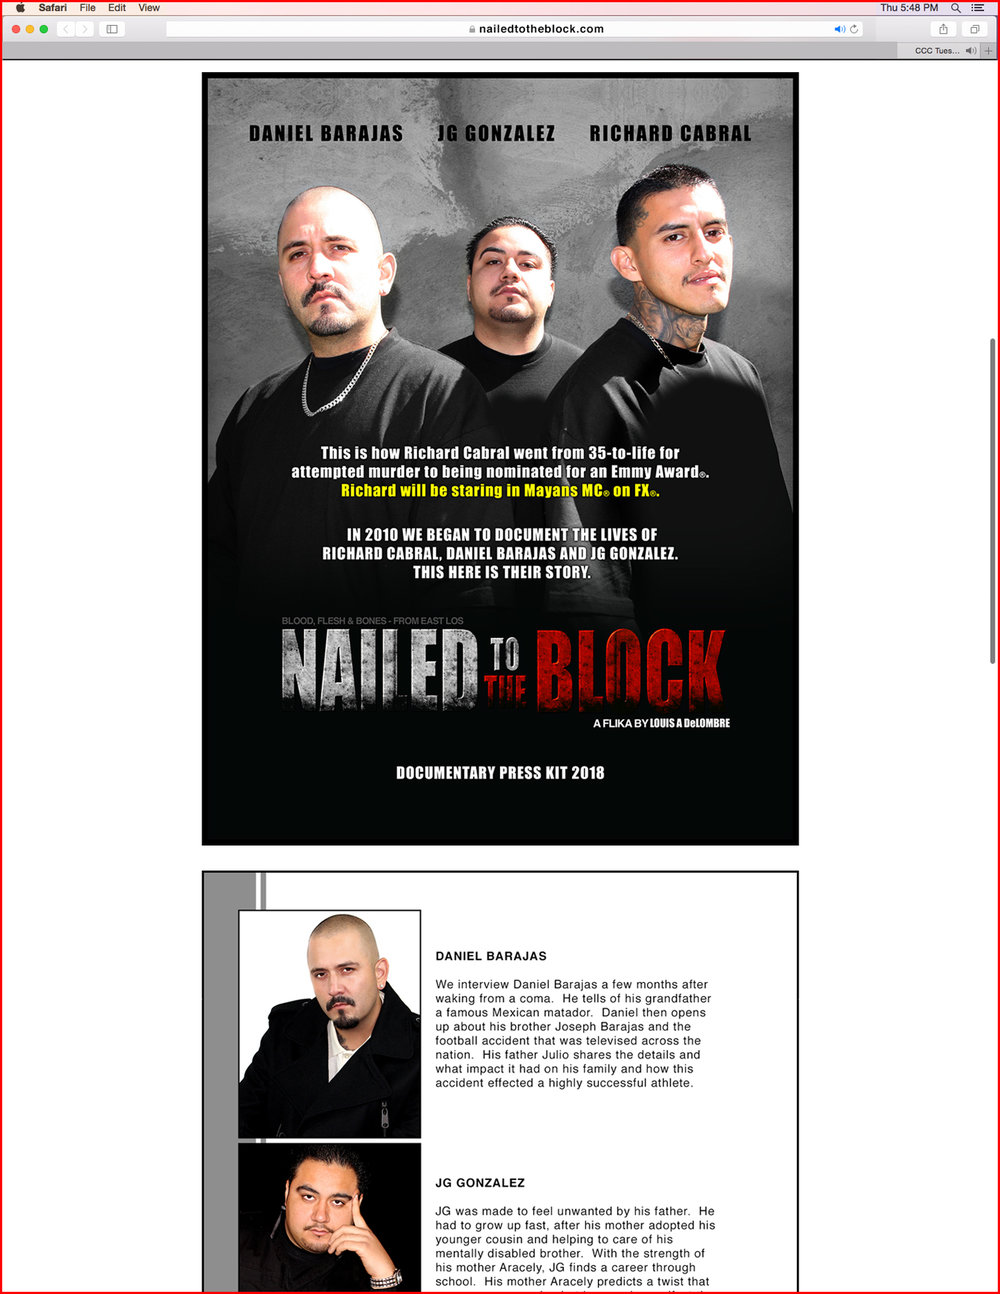 Nailed To The Block Online Press Kit